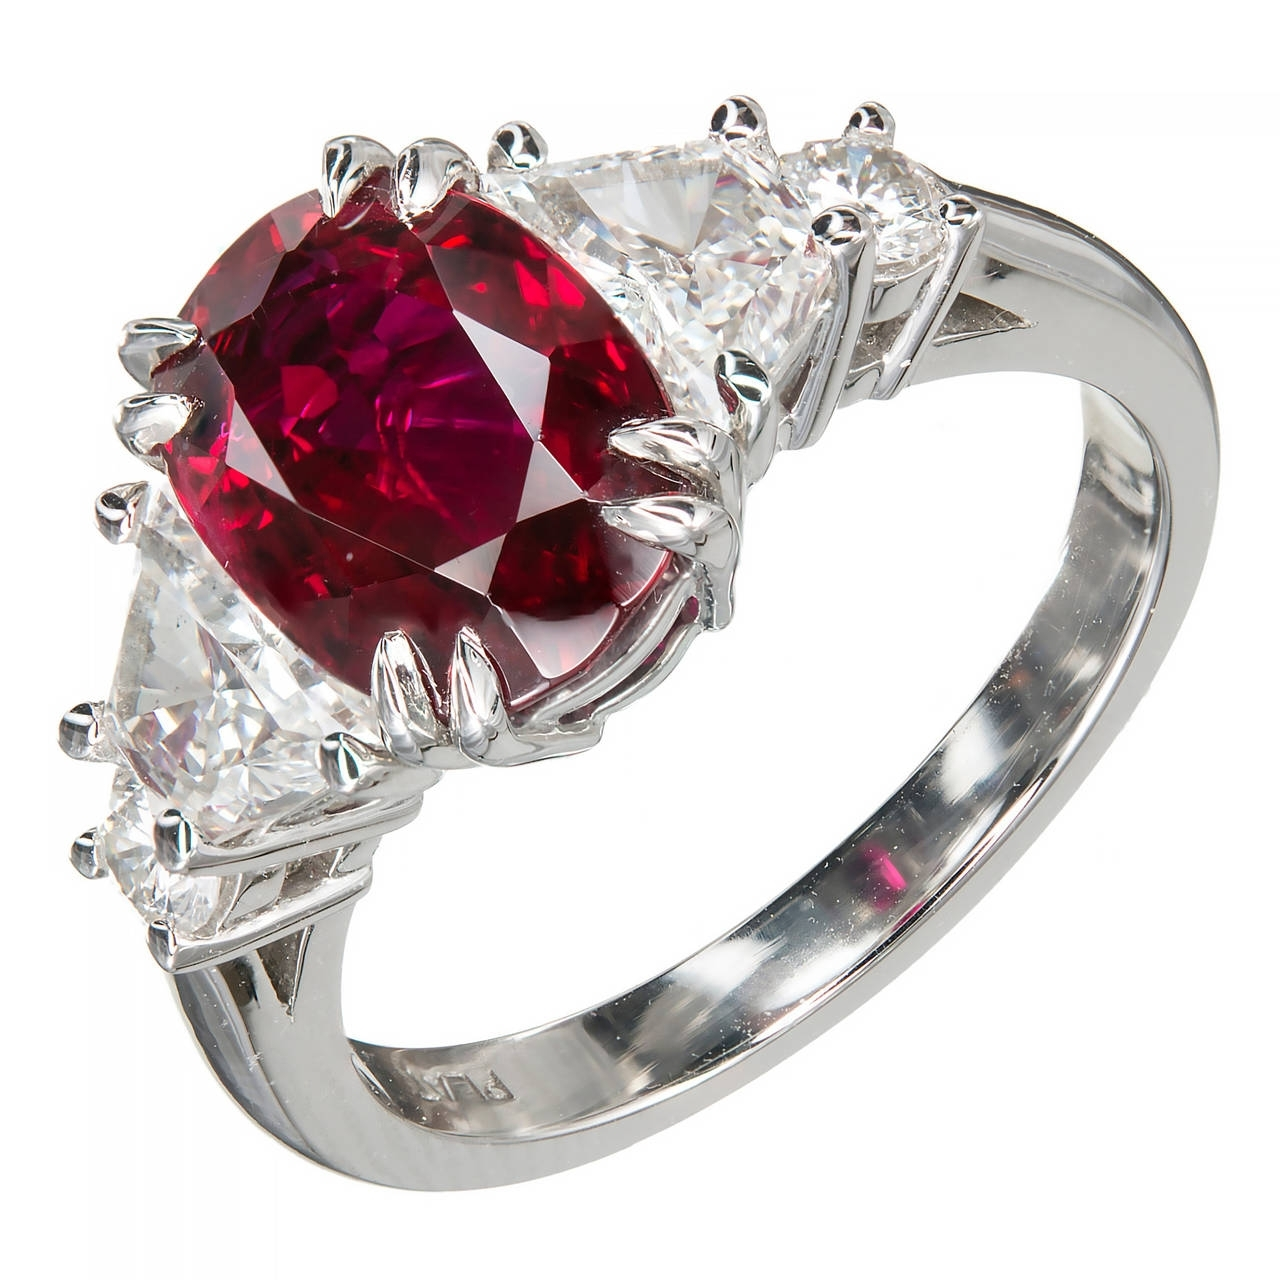 Peter Suchy 2.96 Carat Red Oval Ruby Diamond Platinum Engagement In Recent Vintage Style Ruby And Diamond Rings (Gallery 11 of 15)